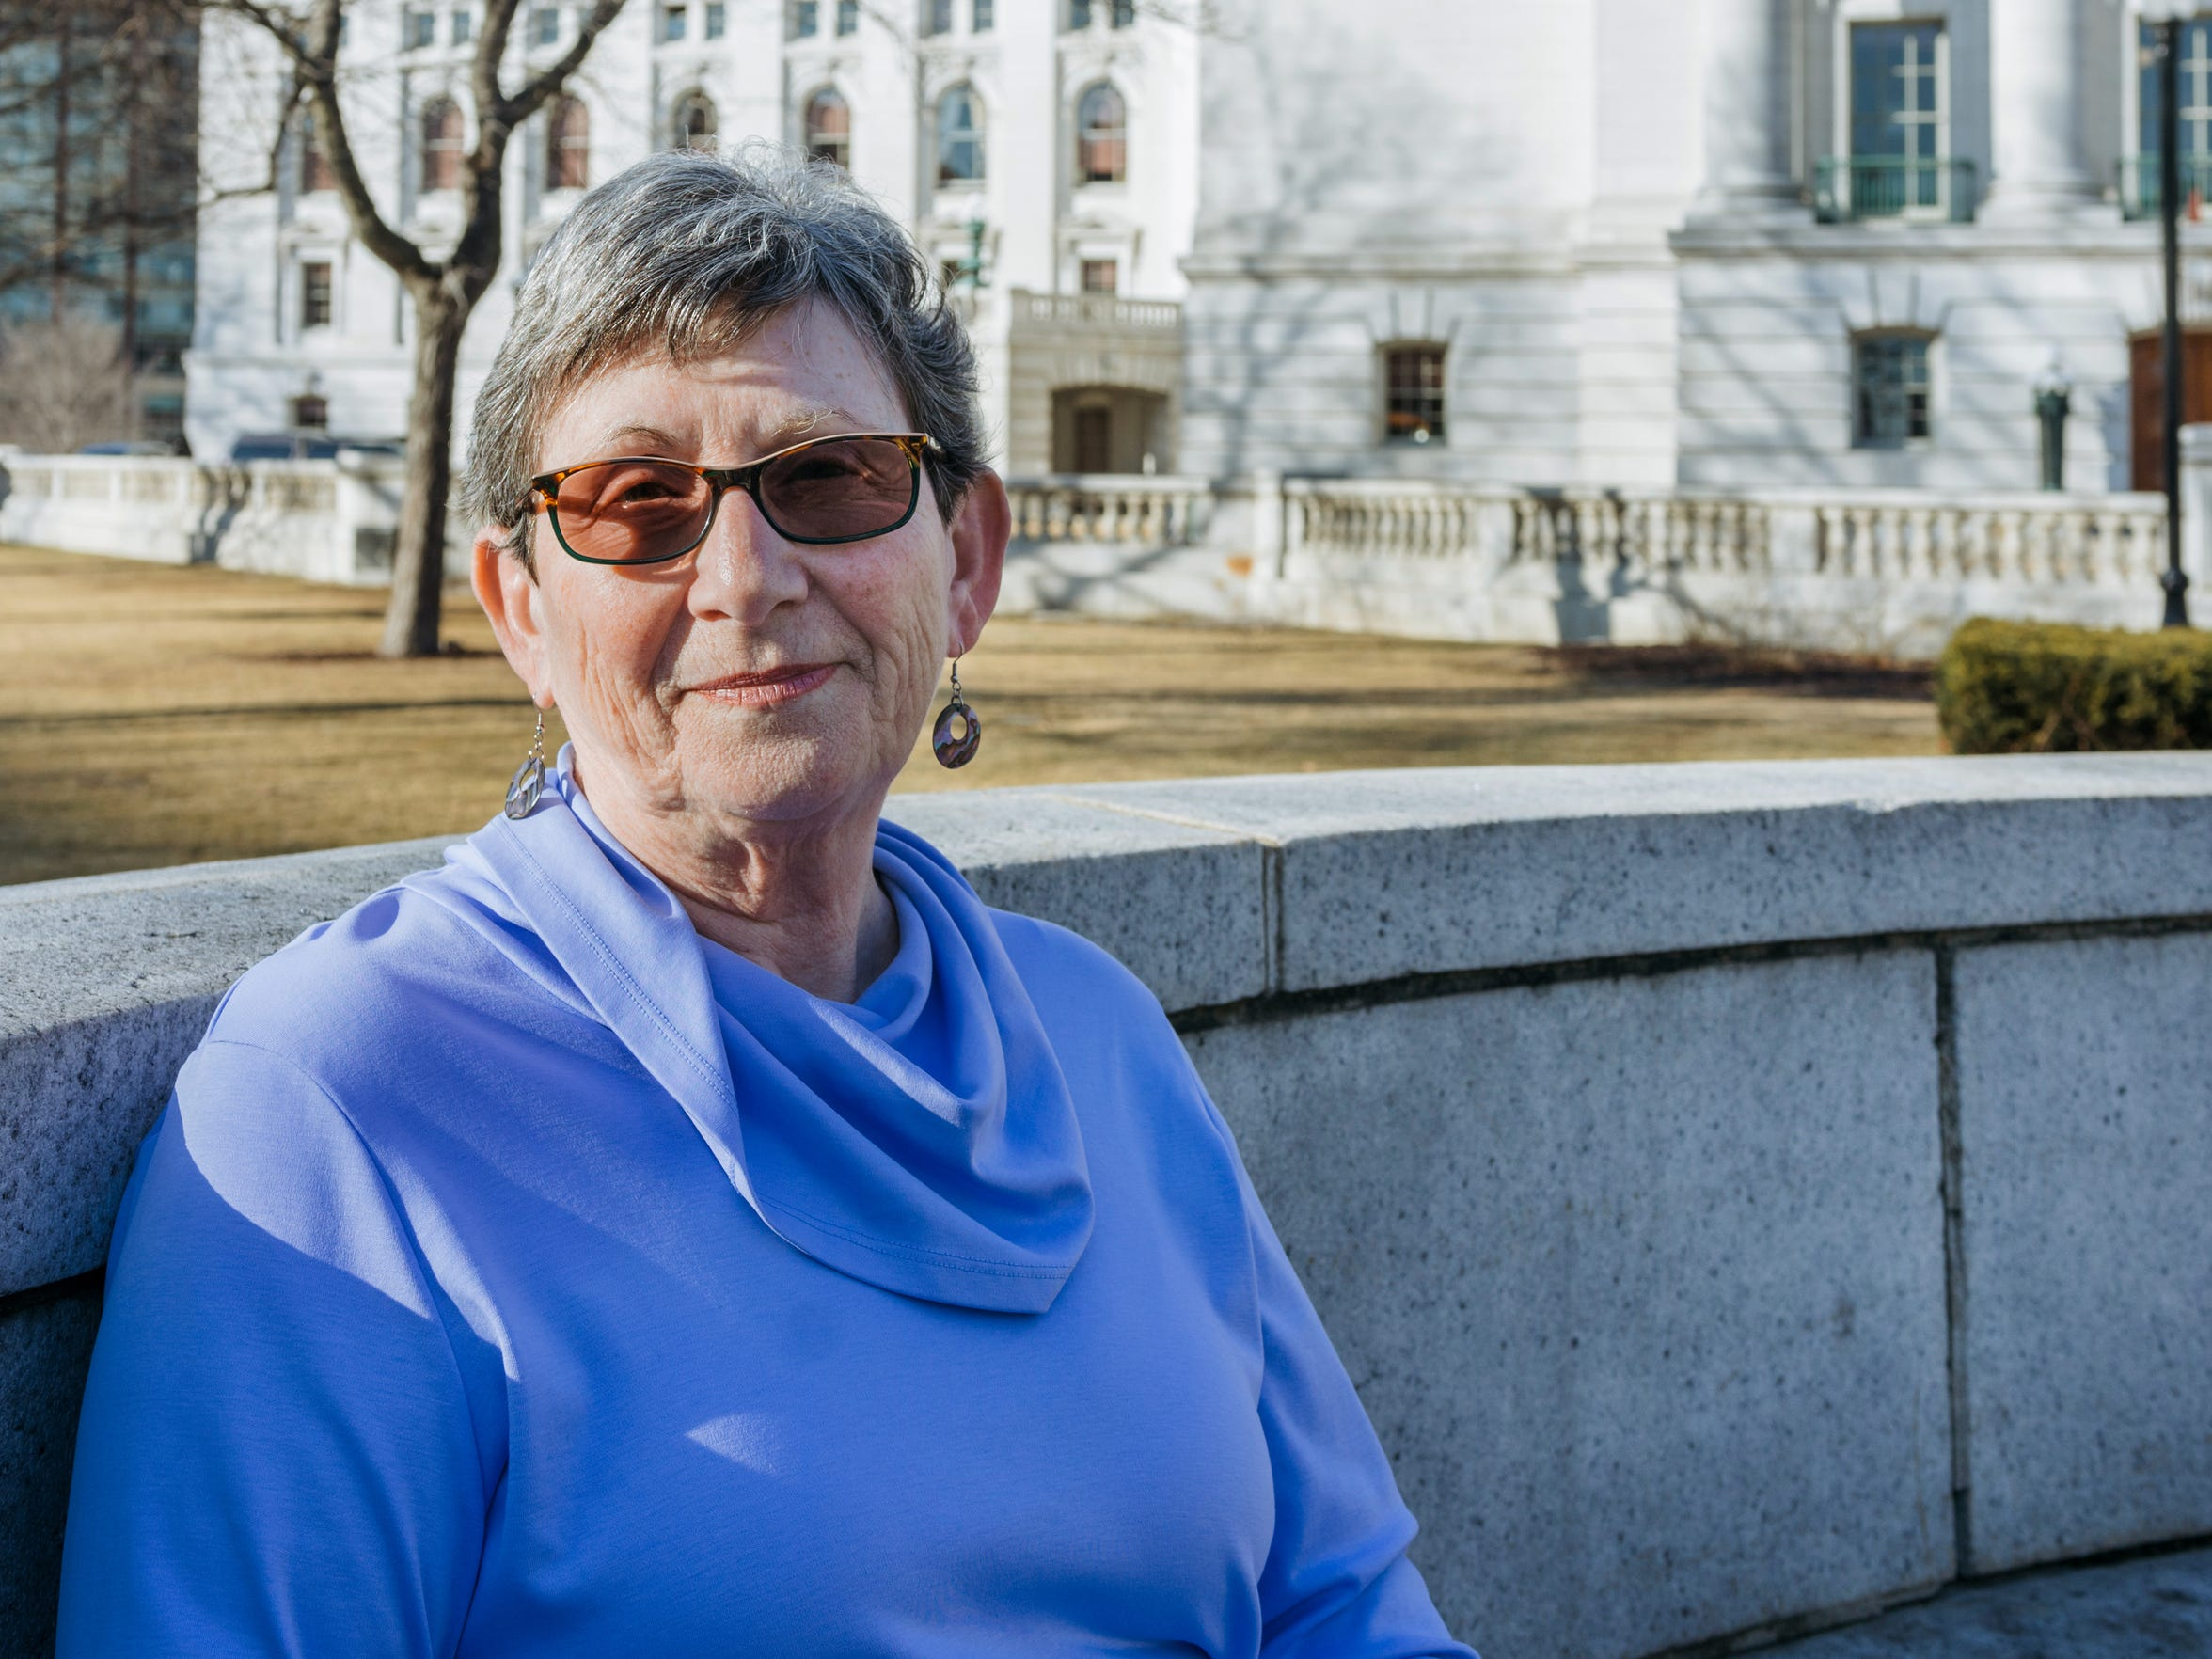 Sheila Plotkin is the founder of We, the Irrelevant, a grass-roots group dedicated to documenting the decreasing impact of citizens on state government. She was photographed at the state Capitol.